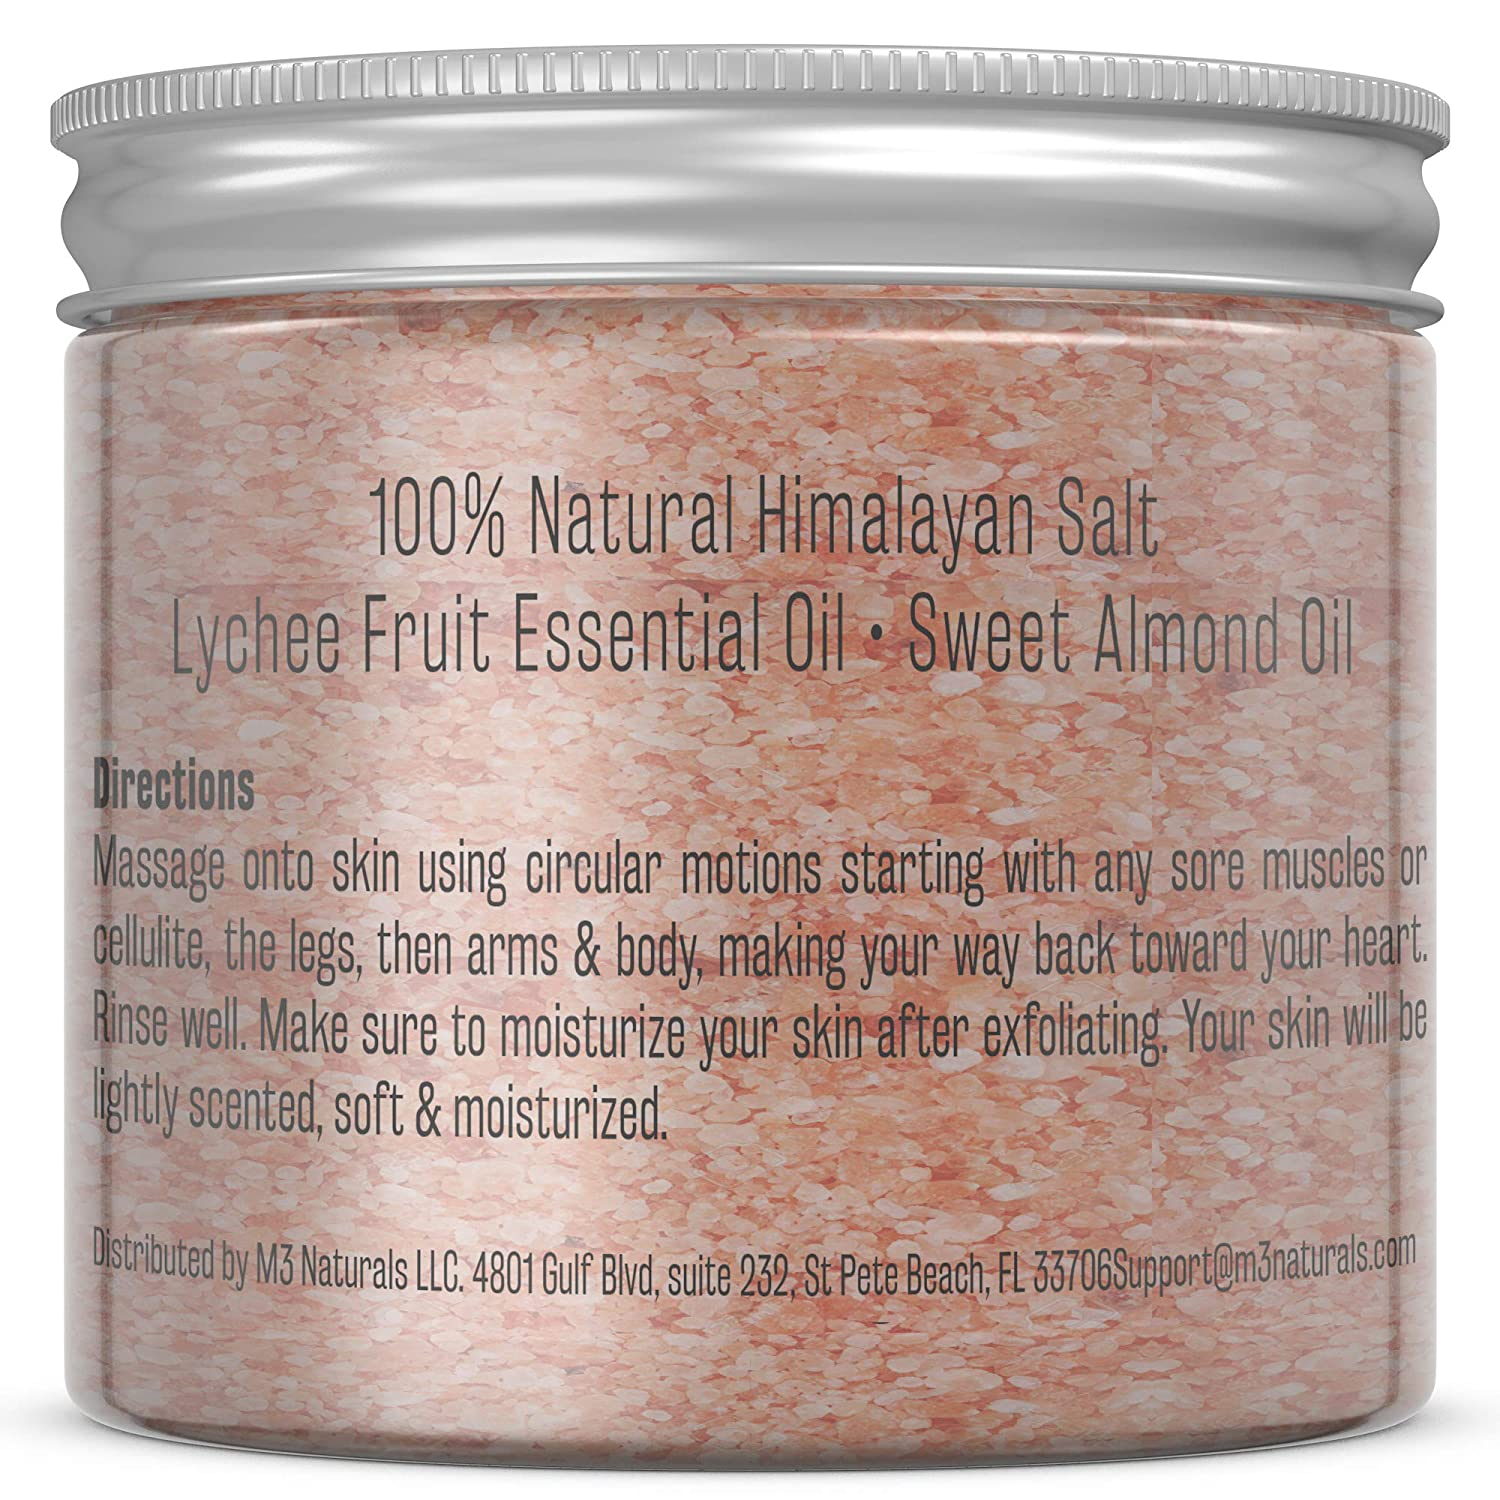 M3 Naturals Himalayan Salt Scrub Infused with Collagen and Stem Cell All Natural Body and Face